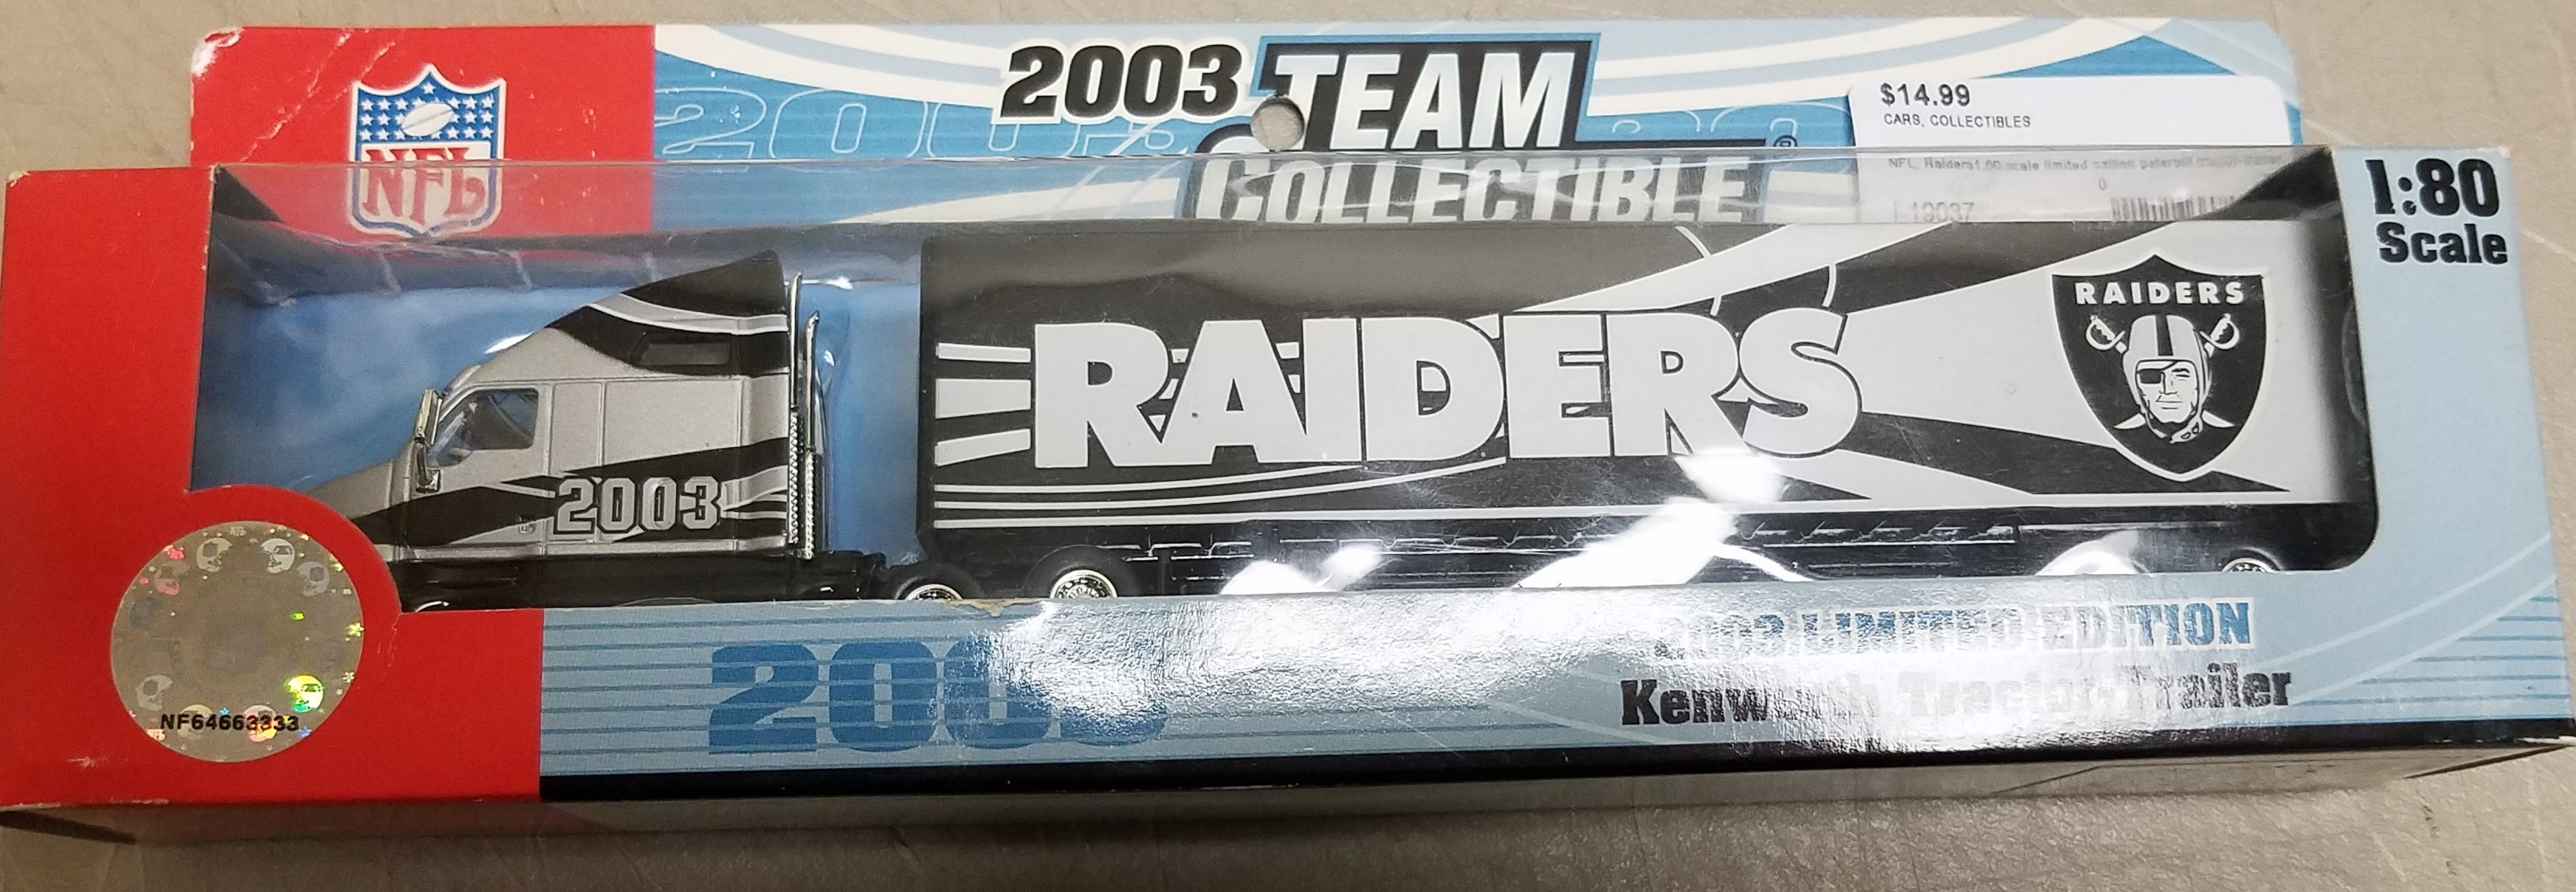 NFL COLLECTIBLES - 2003 OAKLAND RAIDERS KENWORTH TRACTOR TRAILER 1:80 SCALE